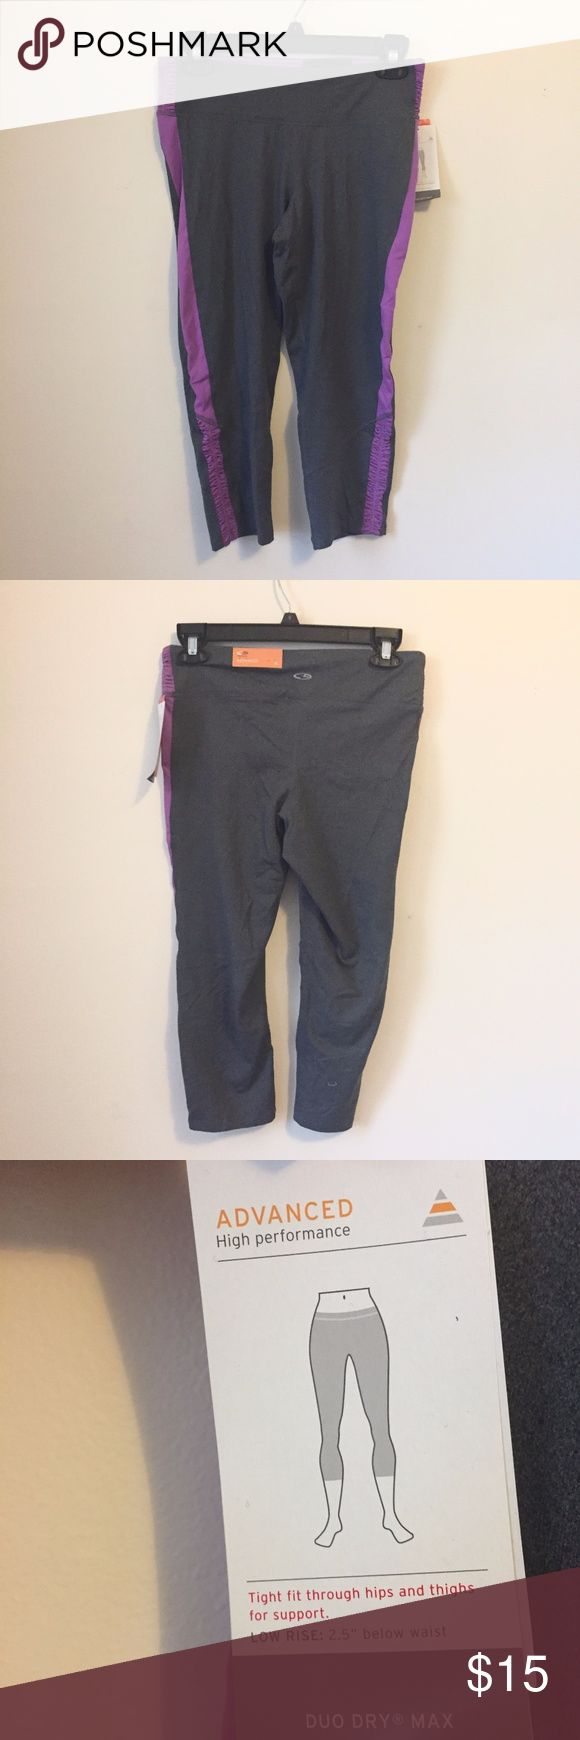 NWT Champion Grey & Purple Workout Capris Medium Champion workout capri leggings - grey with purple panels on sides. Ruching on legs near bottom hem and on hips. New with tags. Size medium. Champion Pants Leggings